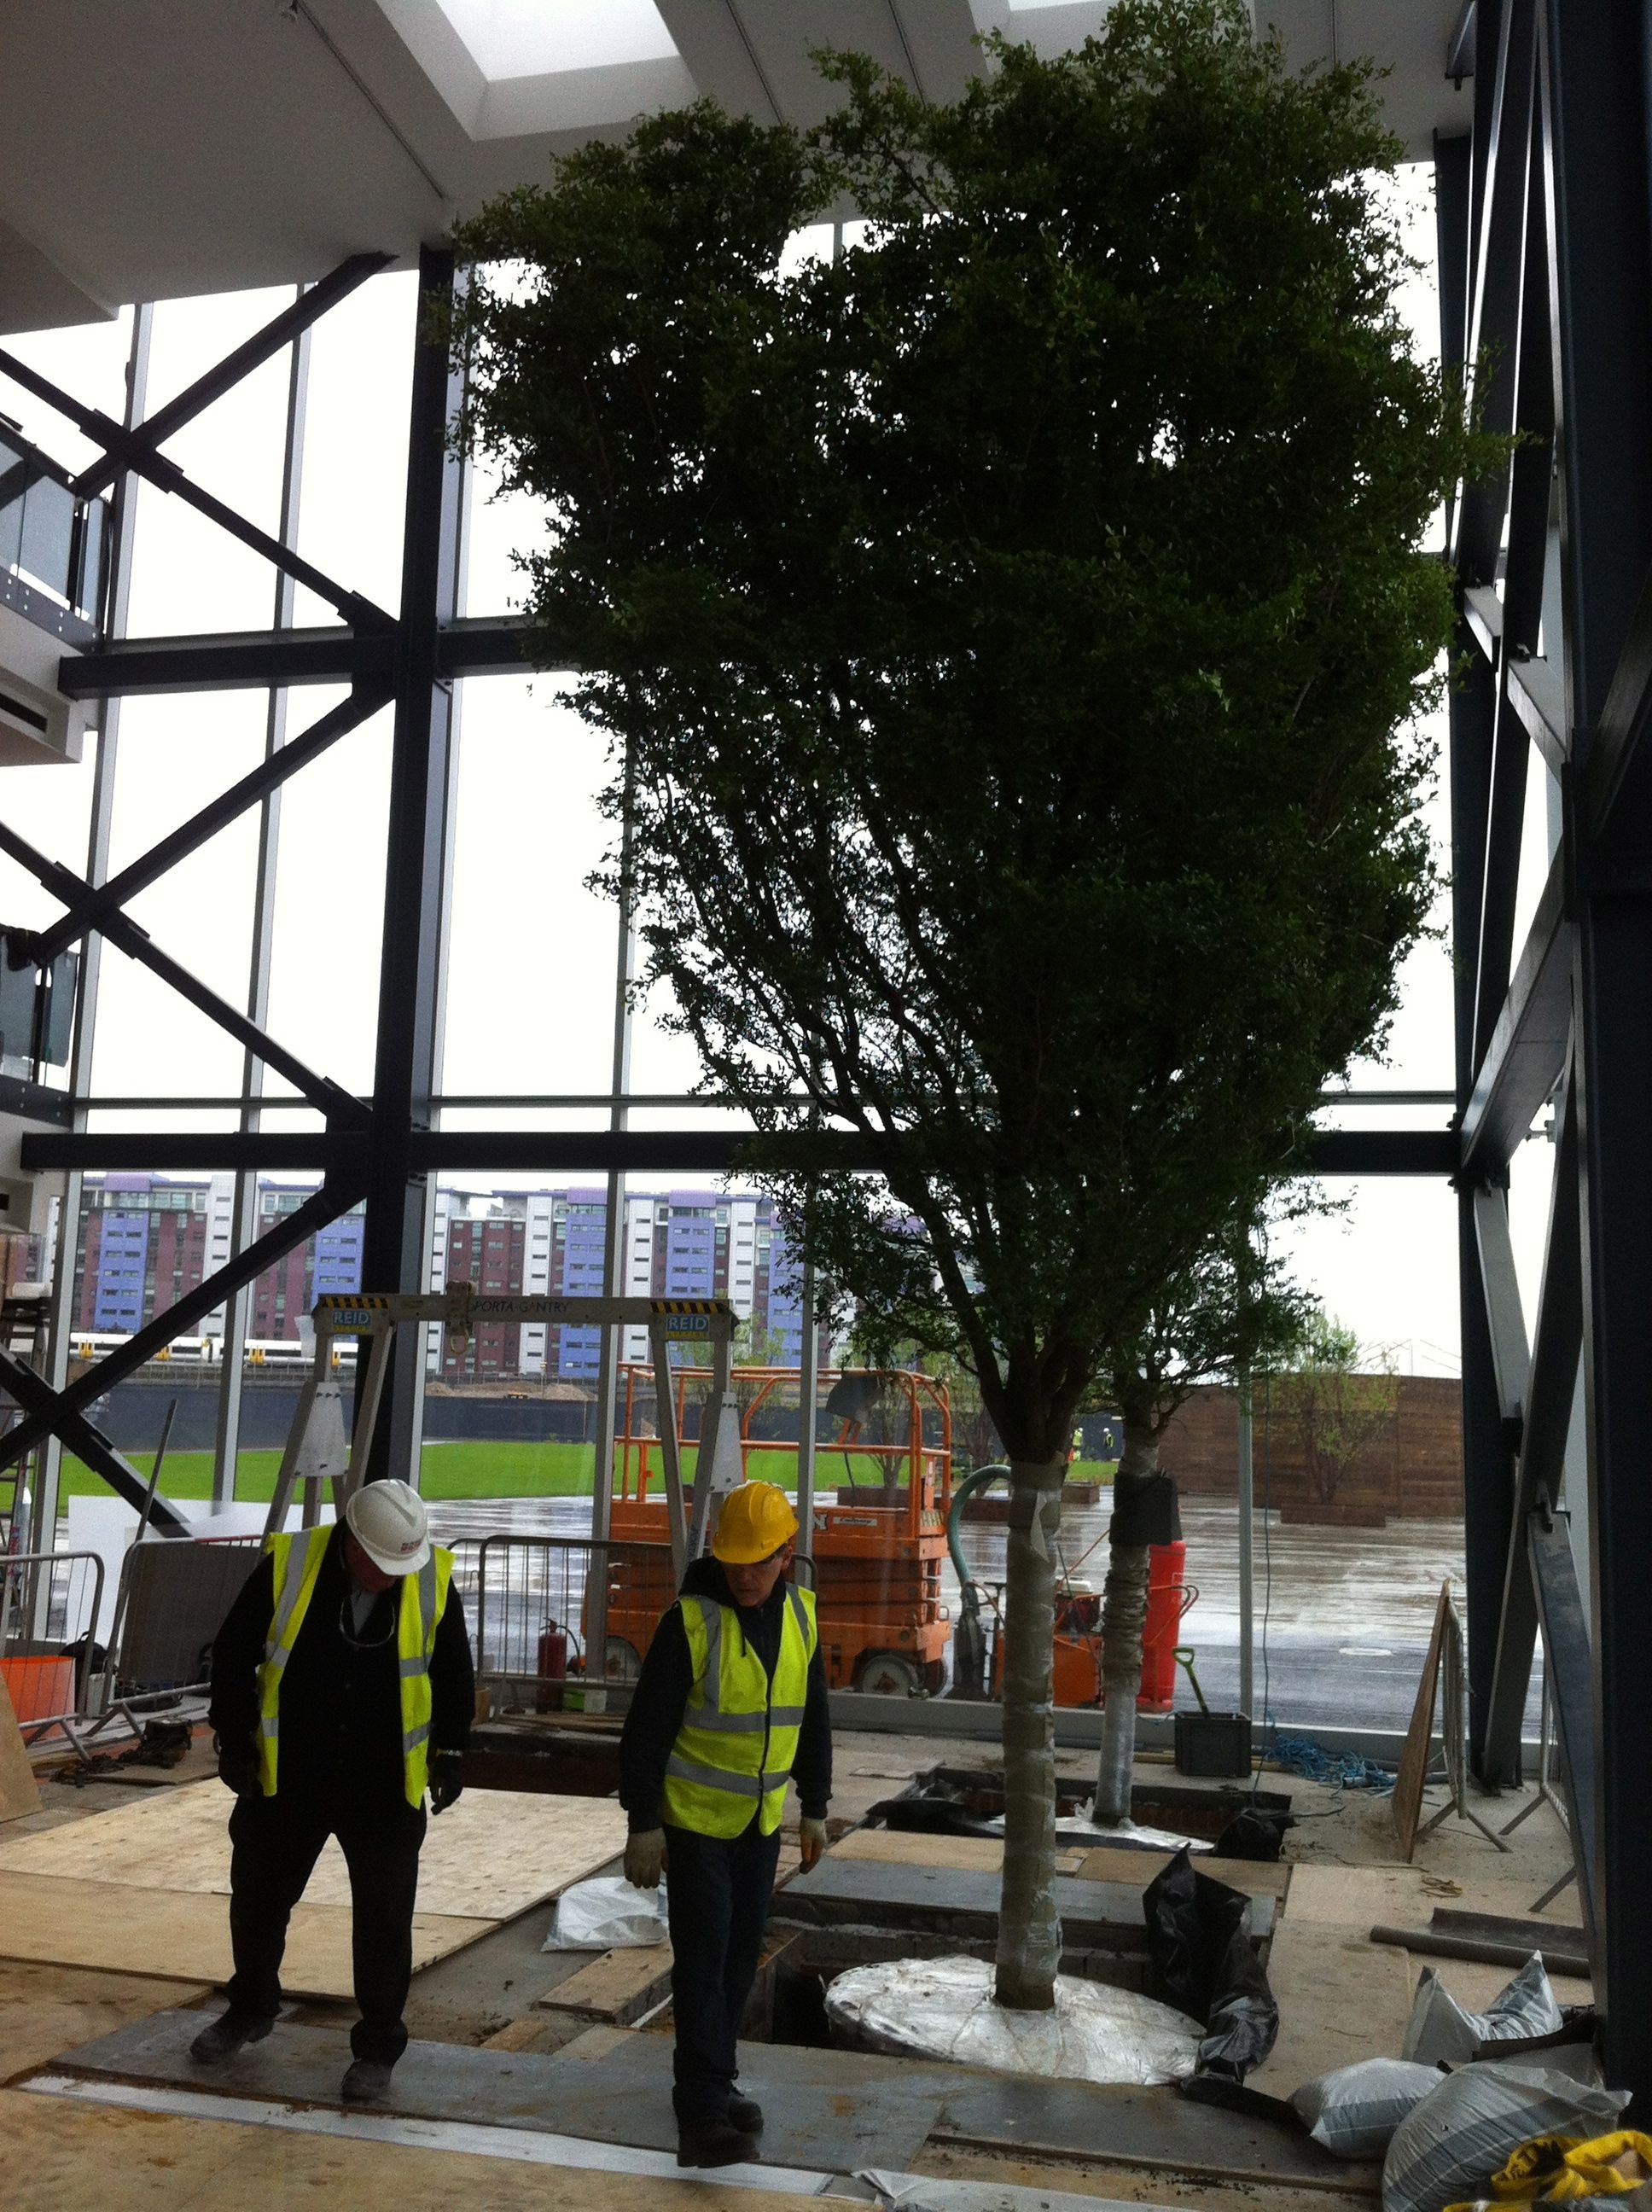 The second of 4 8m tall black Olive trees planted in tree pit in atrium space in office building